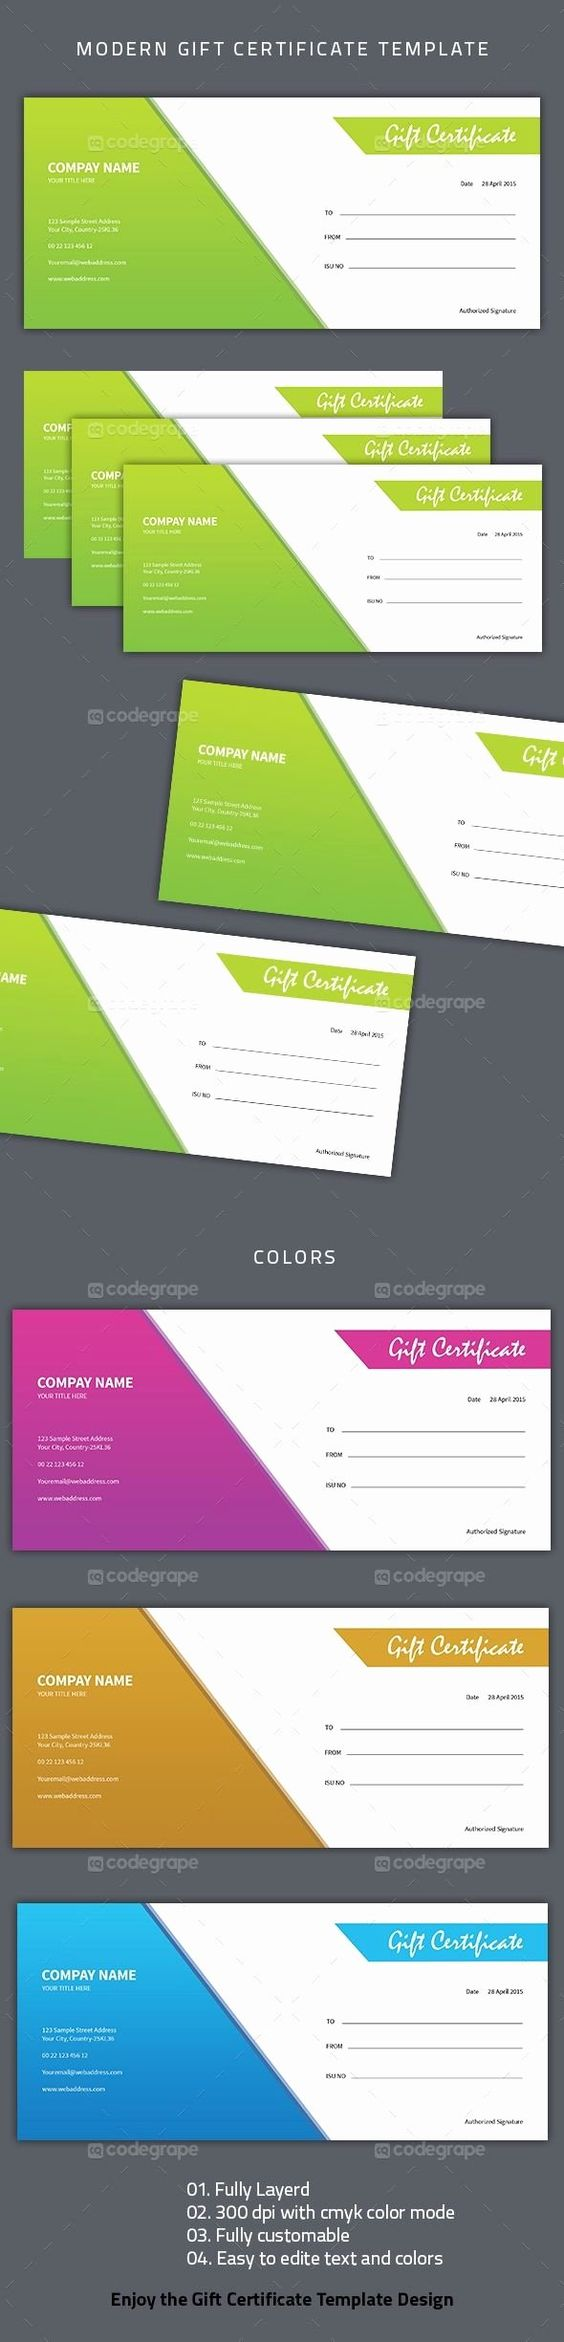 Gftlz Gift Certificate Template Download Lovely Gift Certificate Sample Dannyb Gift Certificate Template Certificate Templates Gift Certificate Template Word